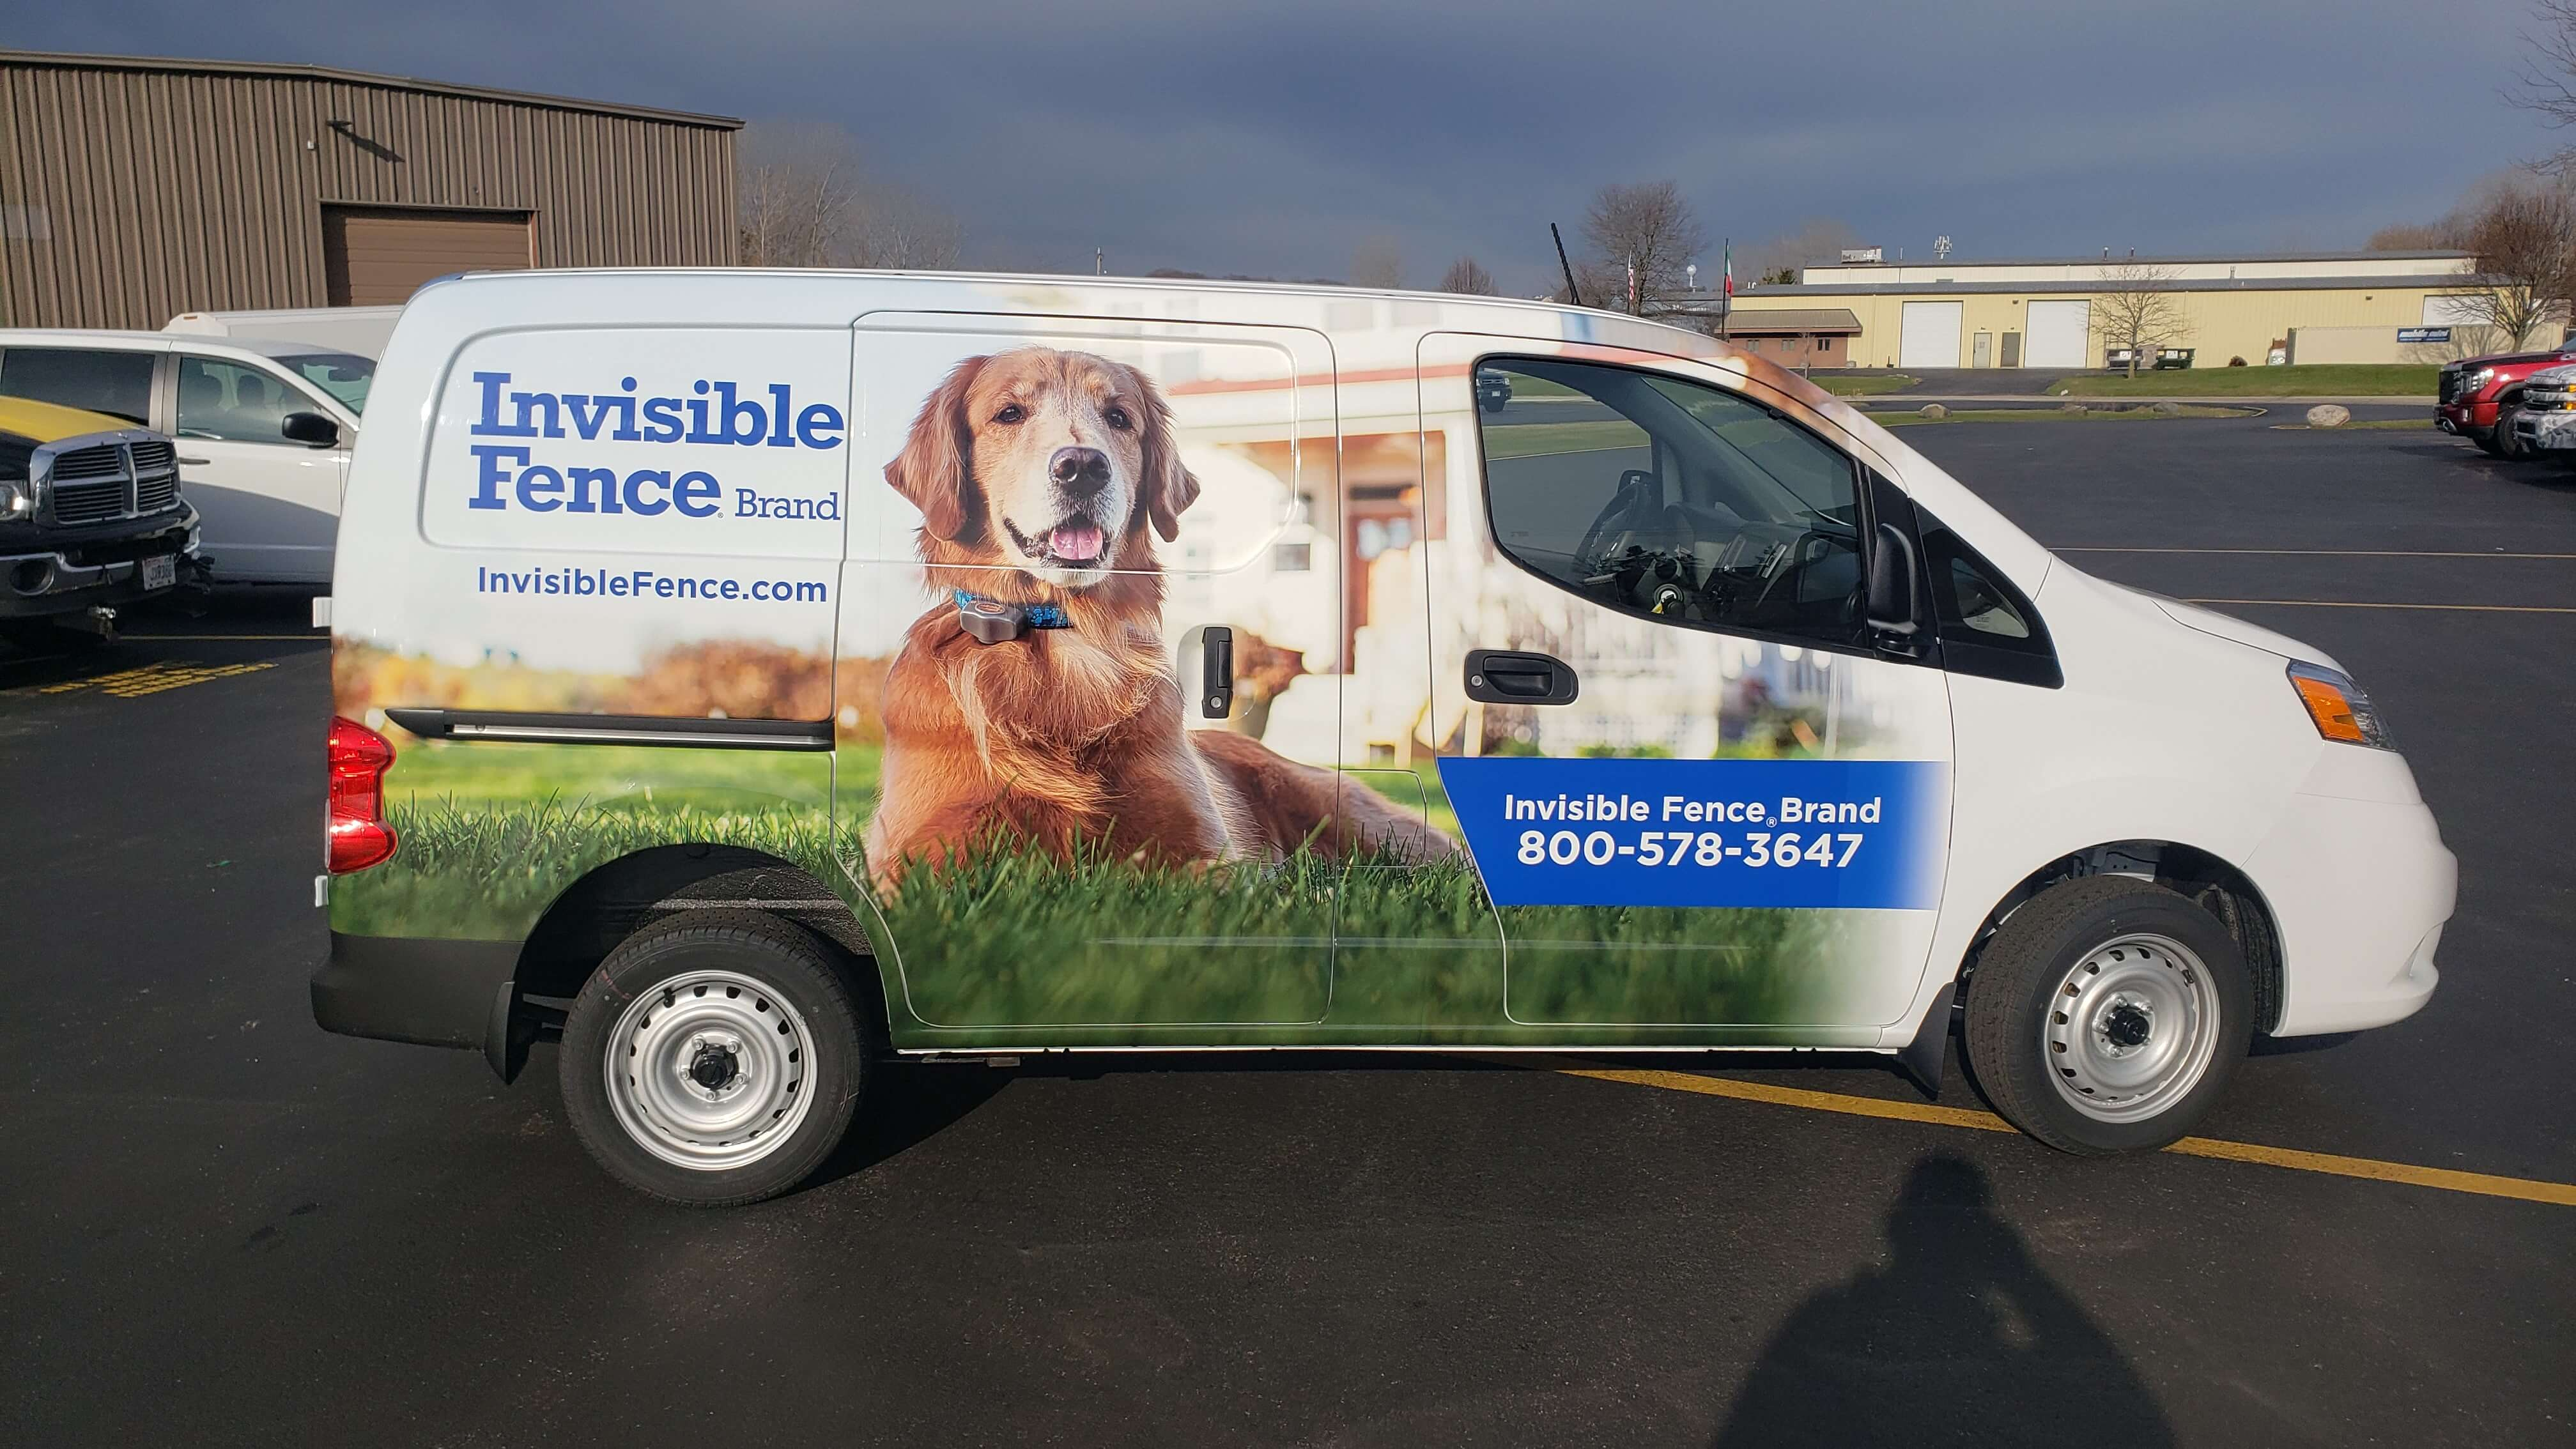 Invisible Fence Fleet Van Wrap by Signs and Lines